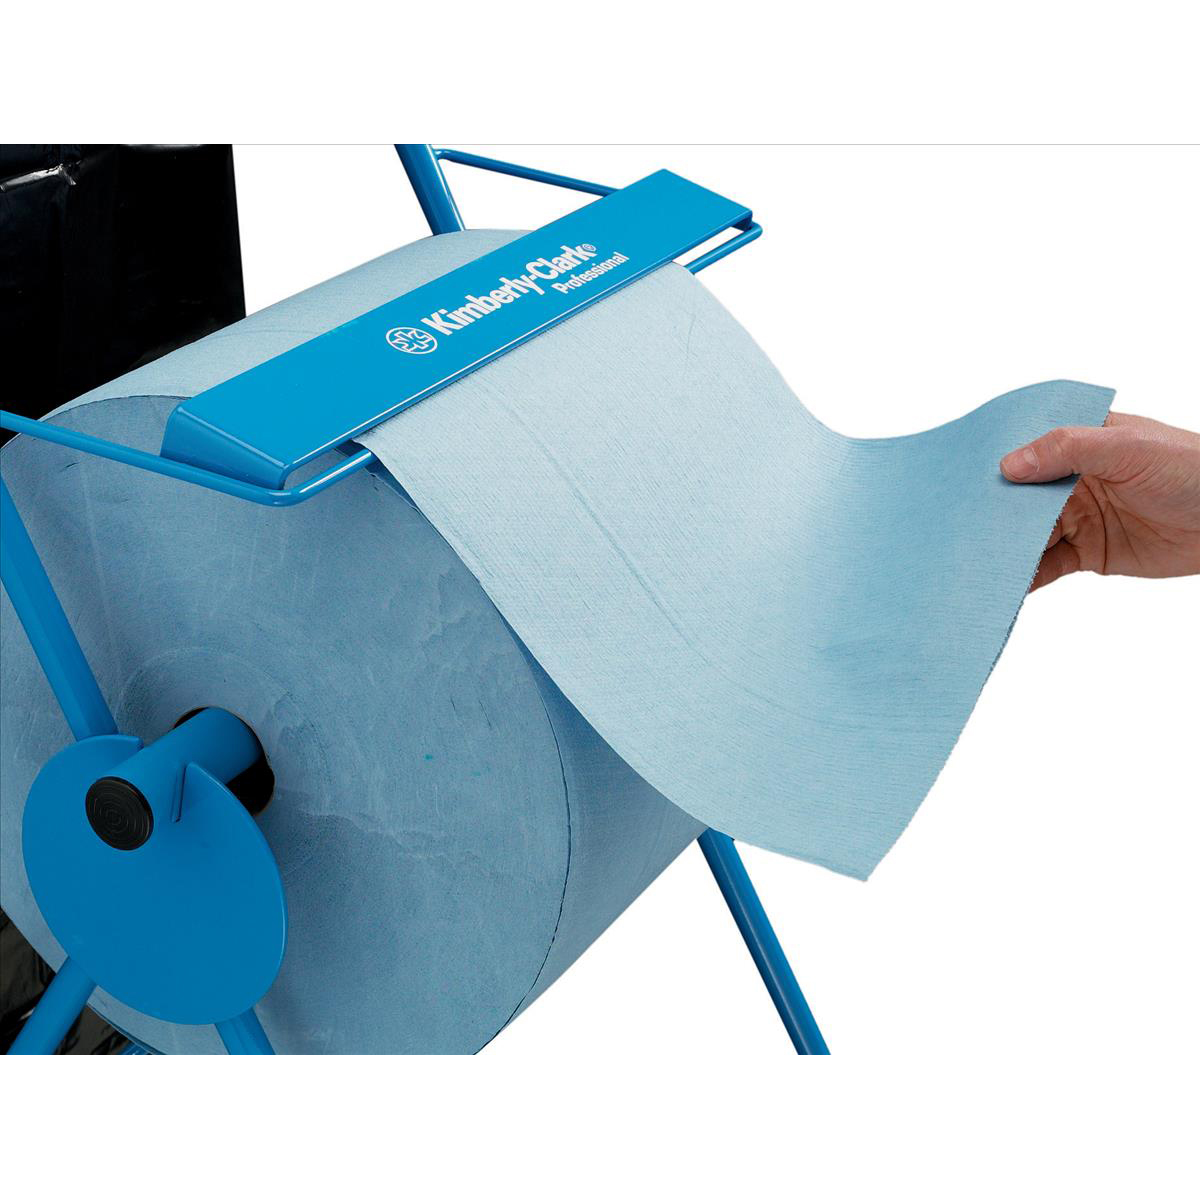 WYPALL Mobile Stand Wiper Dispenser 6155 Large Roll with Cutter 2 Wheels Tubular Frame Blue Ref C01848